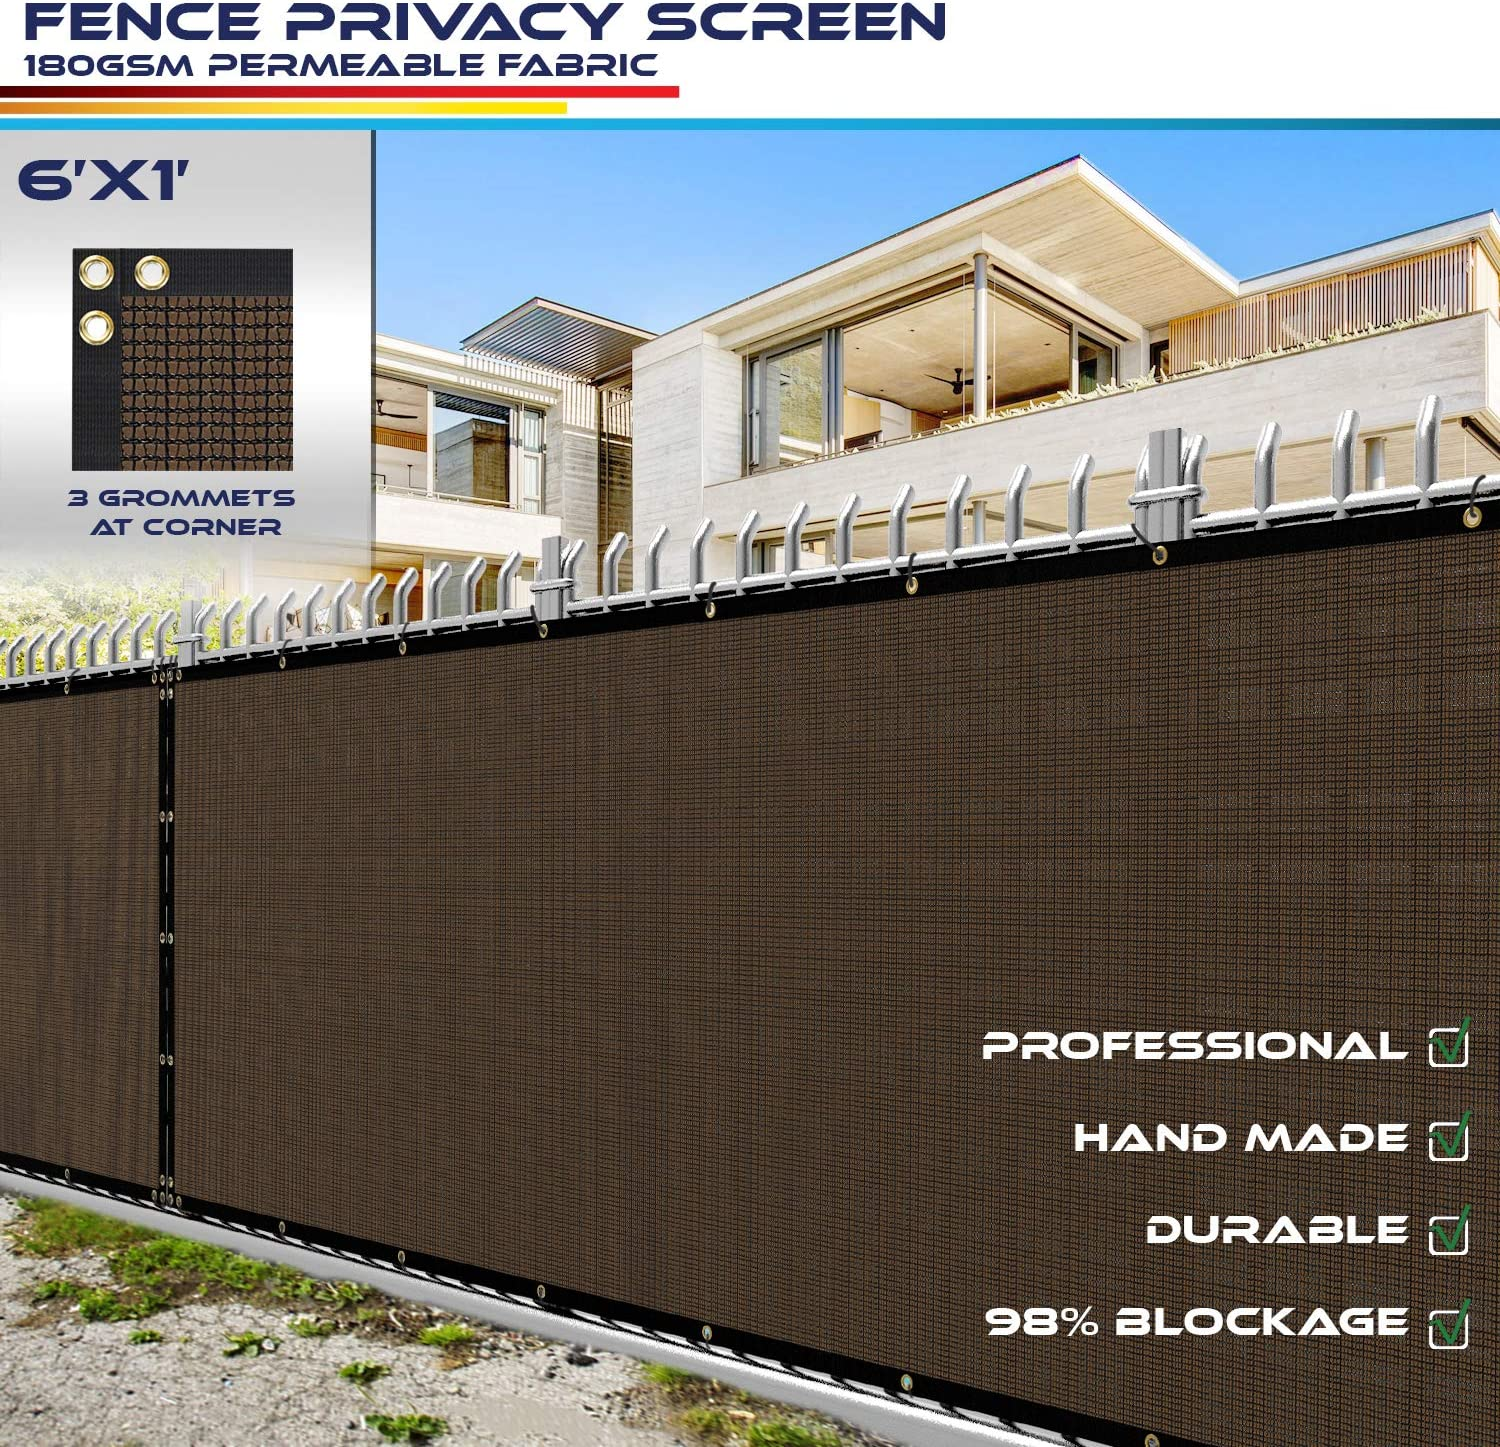 6 x 1 Privacy Fence Screen in Brown with Brass Grommet 98/% Blockage Windscreen Outdoor Mesh Fencing Cover Netting 180GSM Fabric